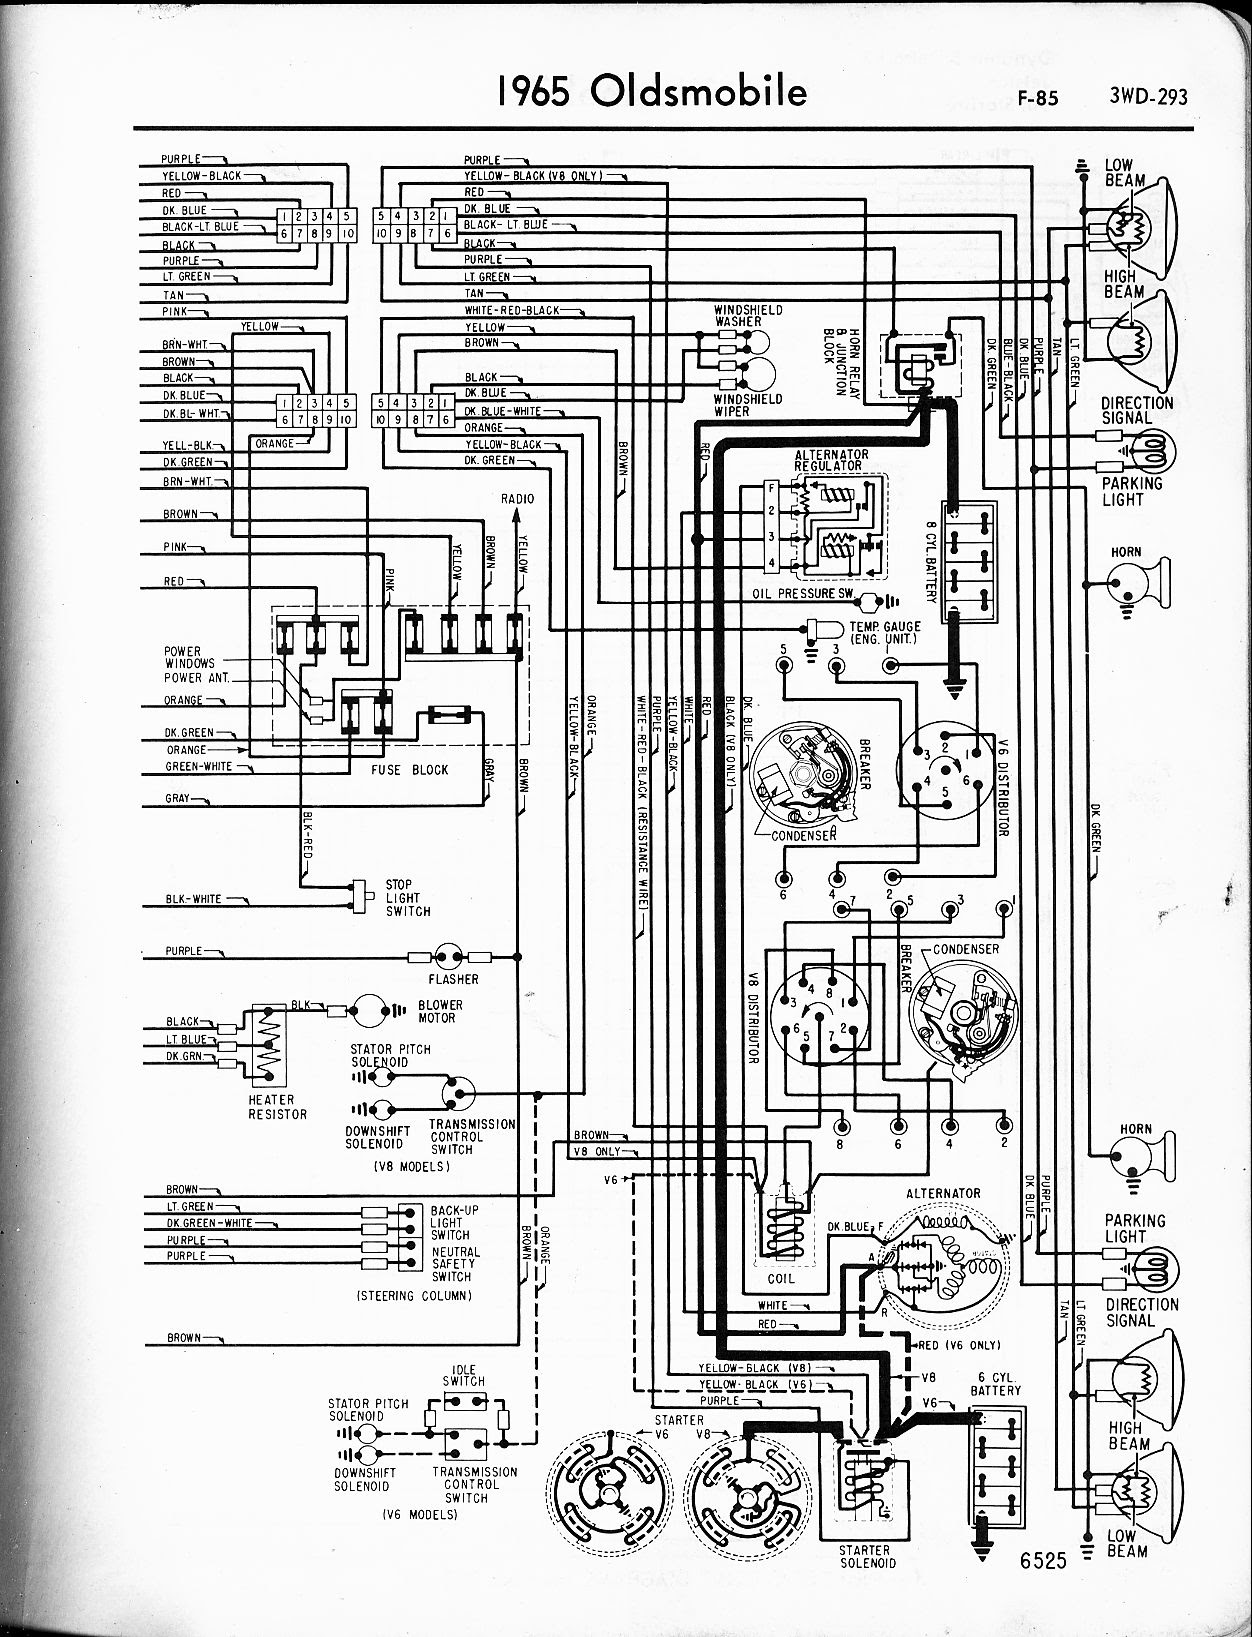 DIAGRAM] 1992 Oldsmobile 88 Royale Wiring Diagram FULL Version HD Quality Wiring  Diagram - ORIGAMIDIAGRAMS.FANTASYEHOBBYGENOVA.ITorigamidiagrams.fantasyehobbygenova.it